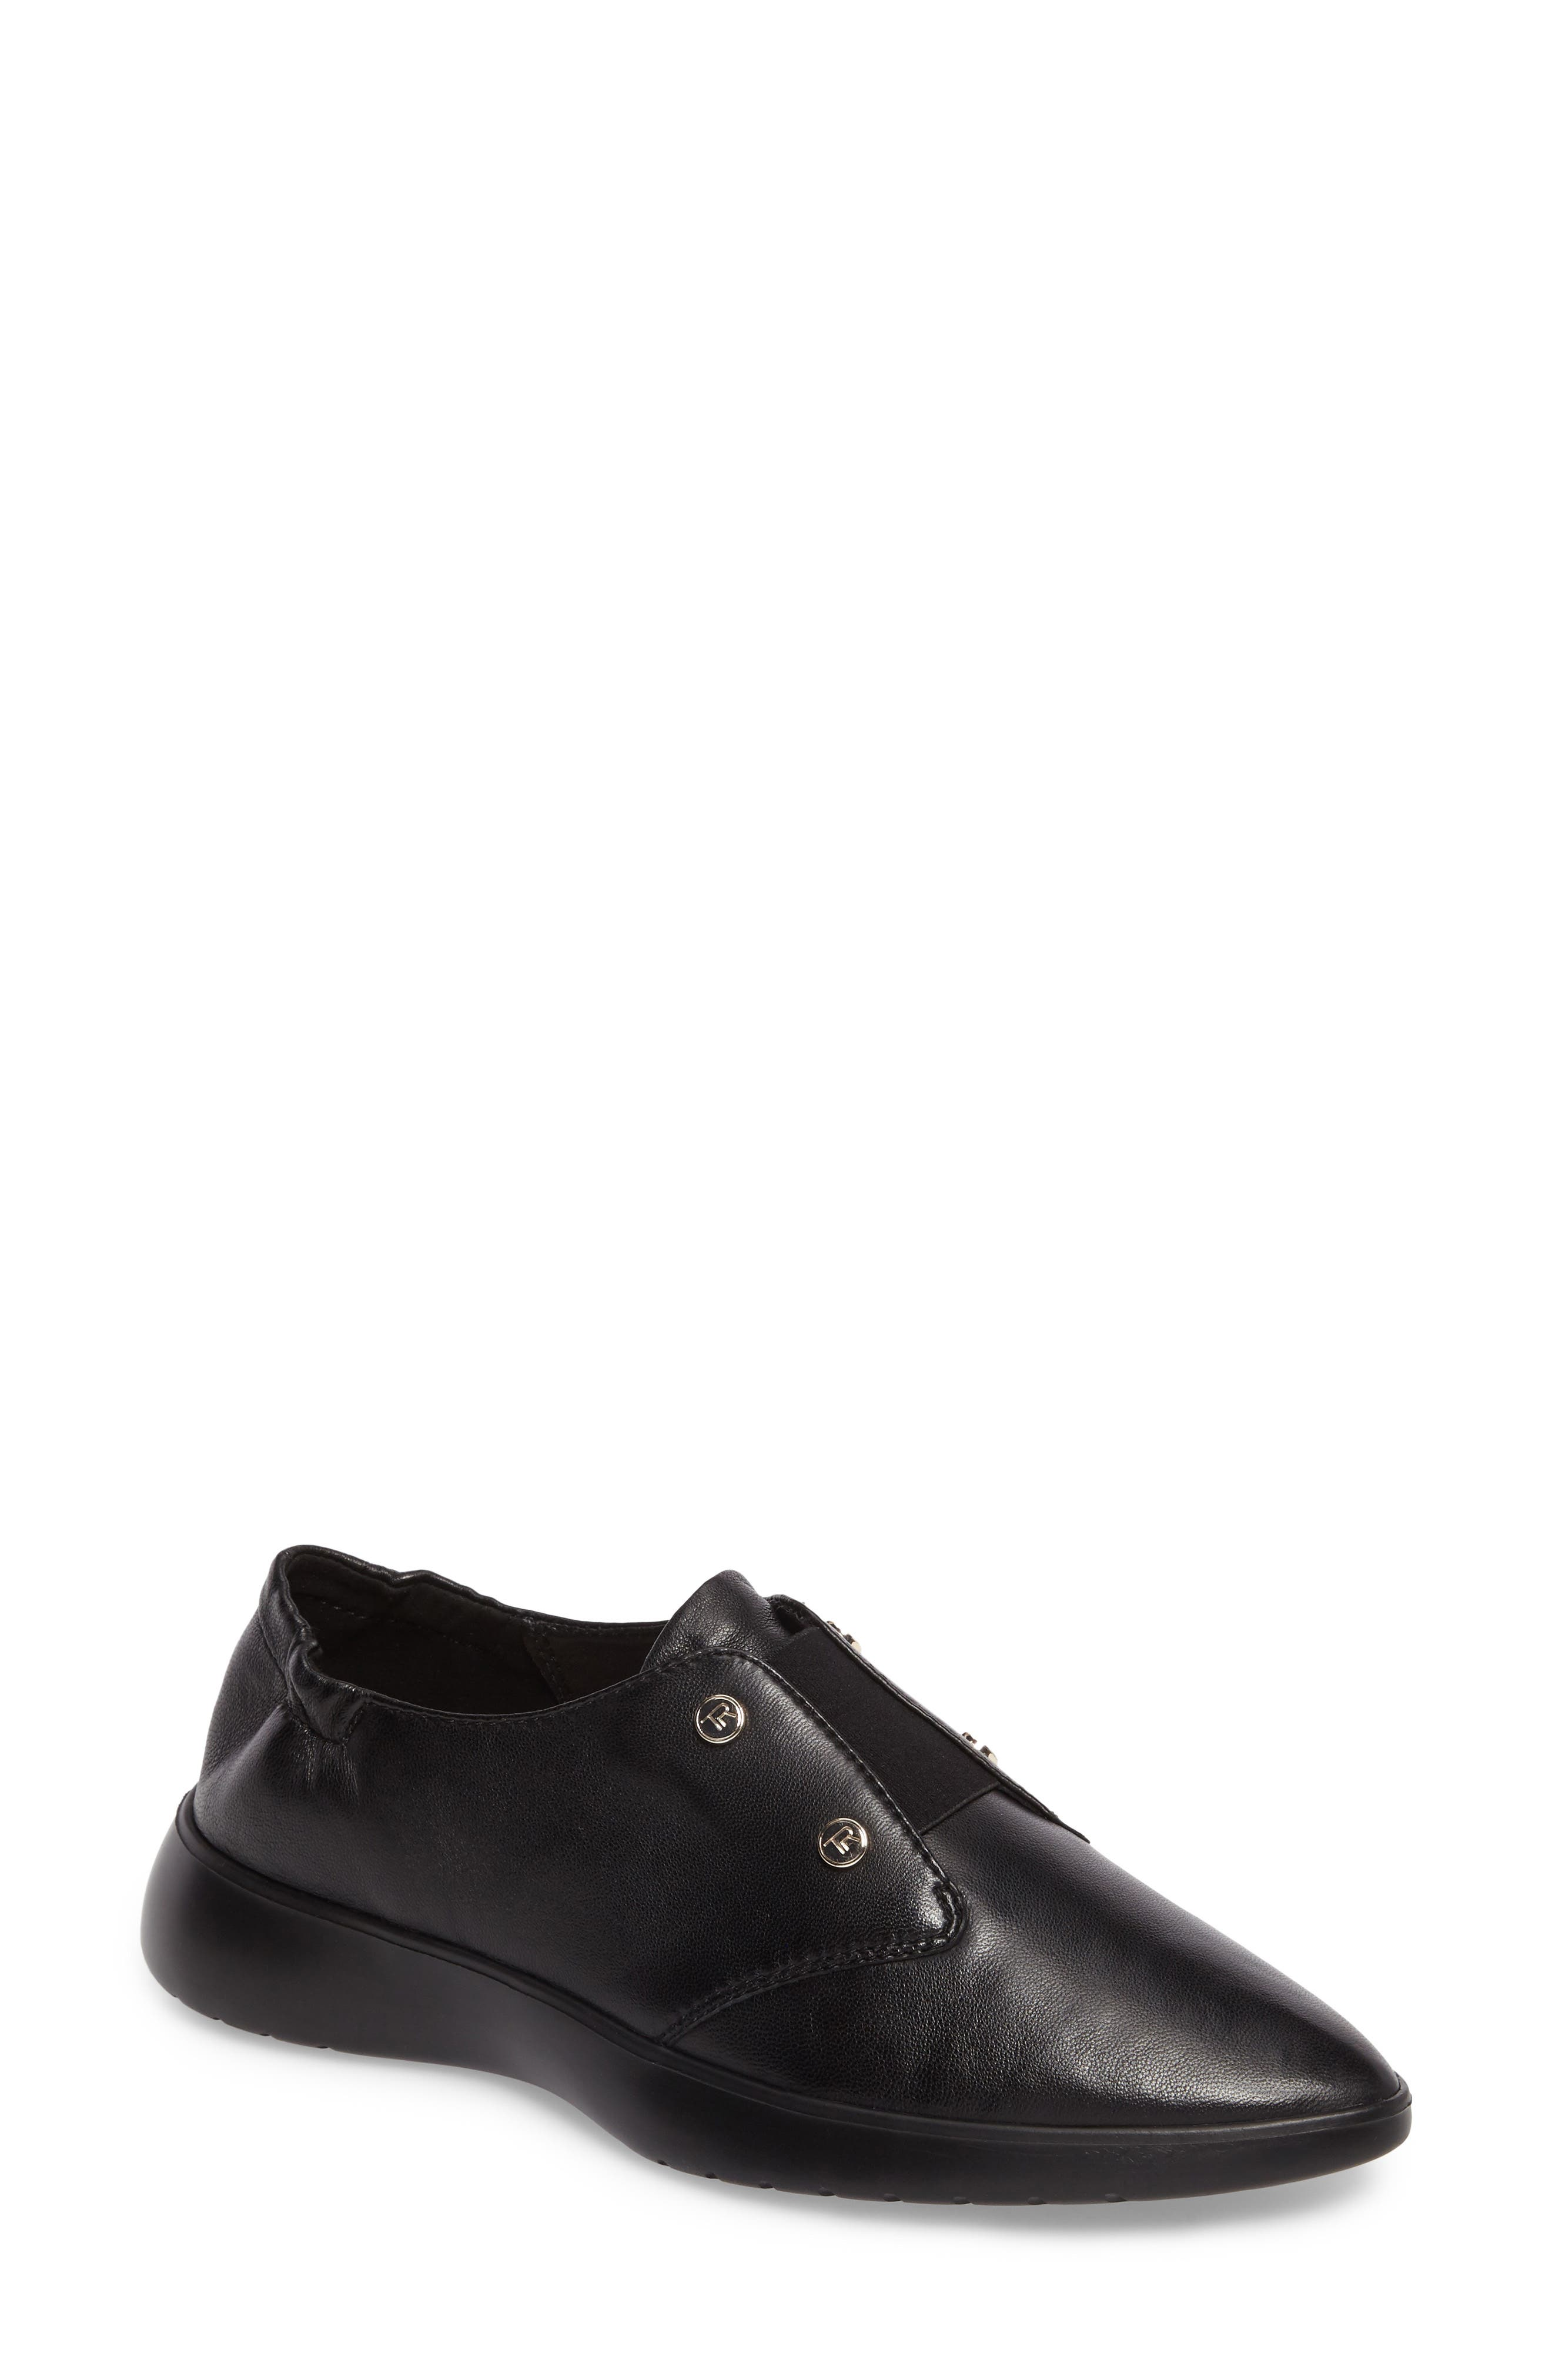 Darcy Slip-On Oxford,                             Main thumbnail 1, color,                             Black Leather